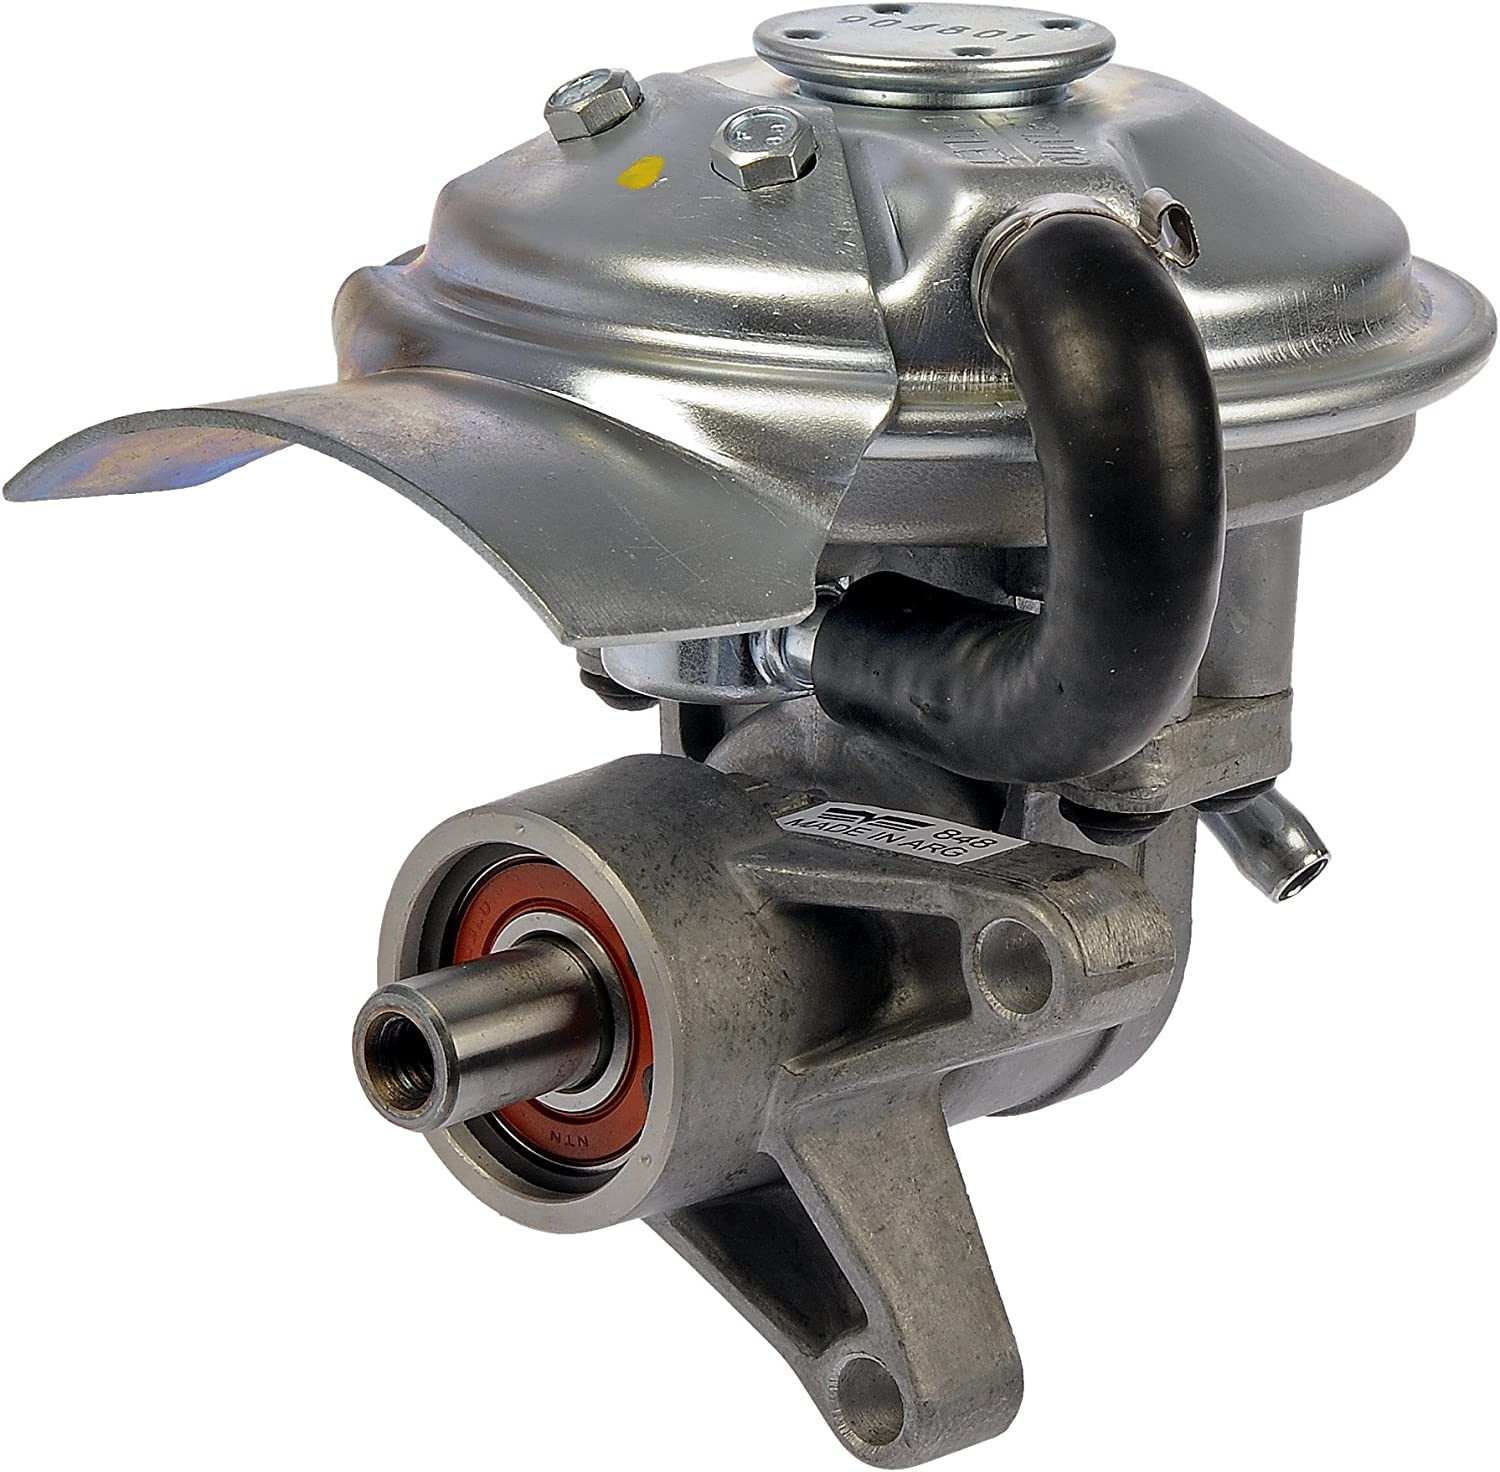 Dorman 904-801 Mechanical Vacuum Pump for Chevrolet